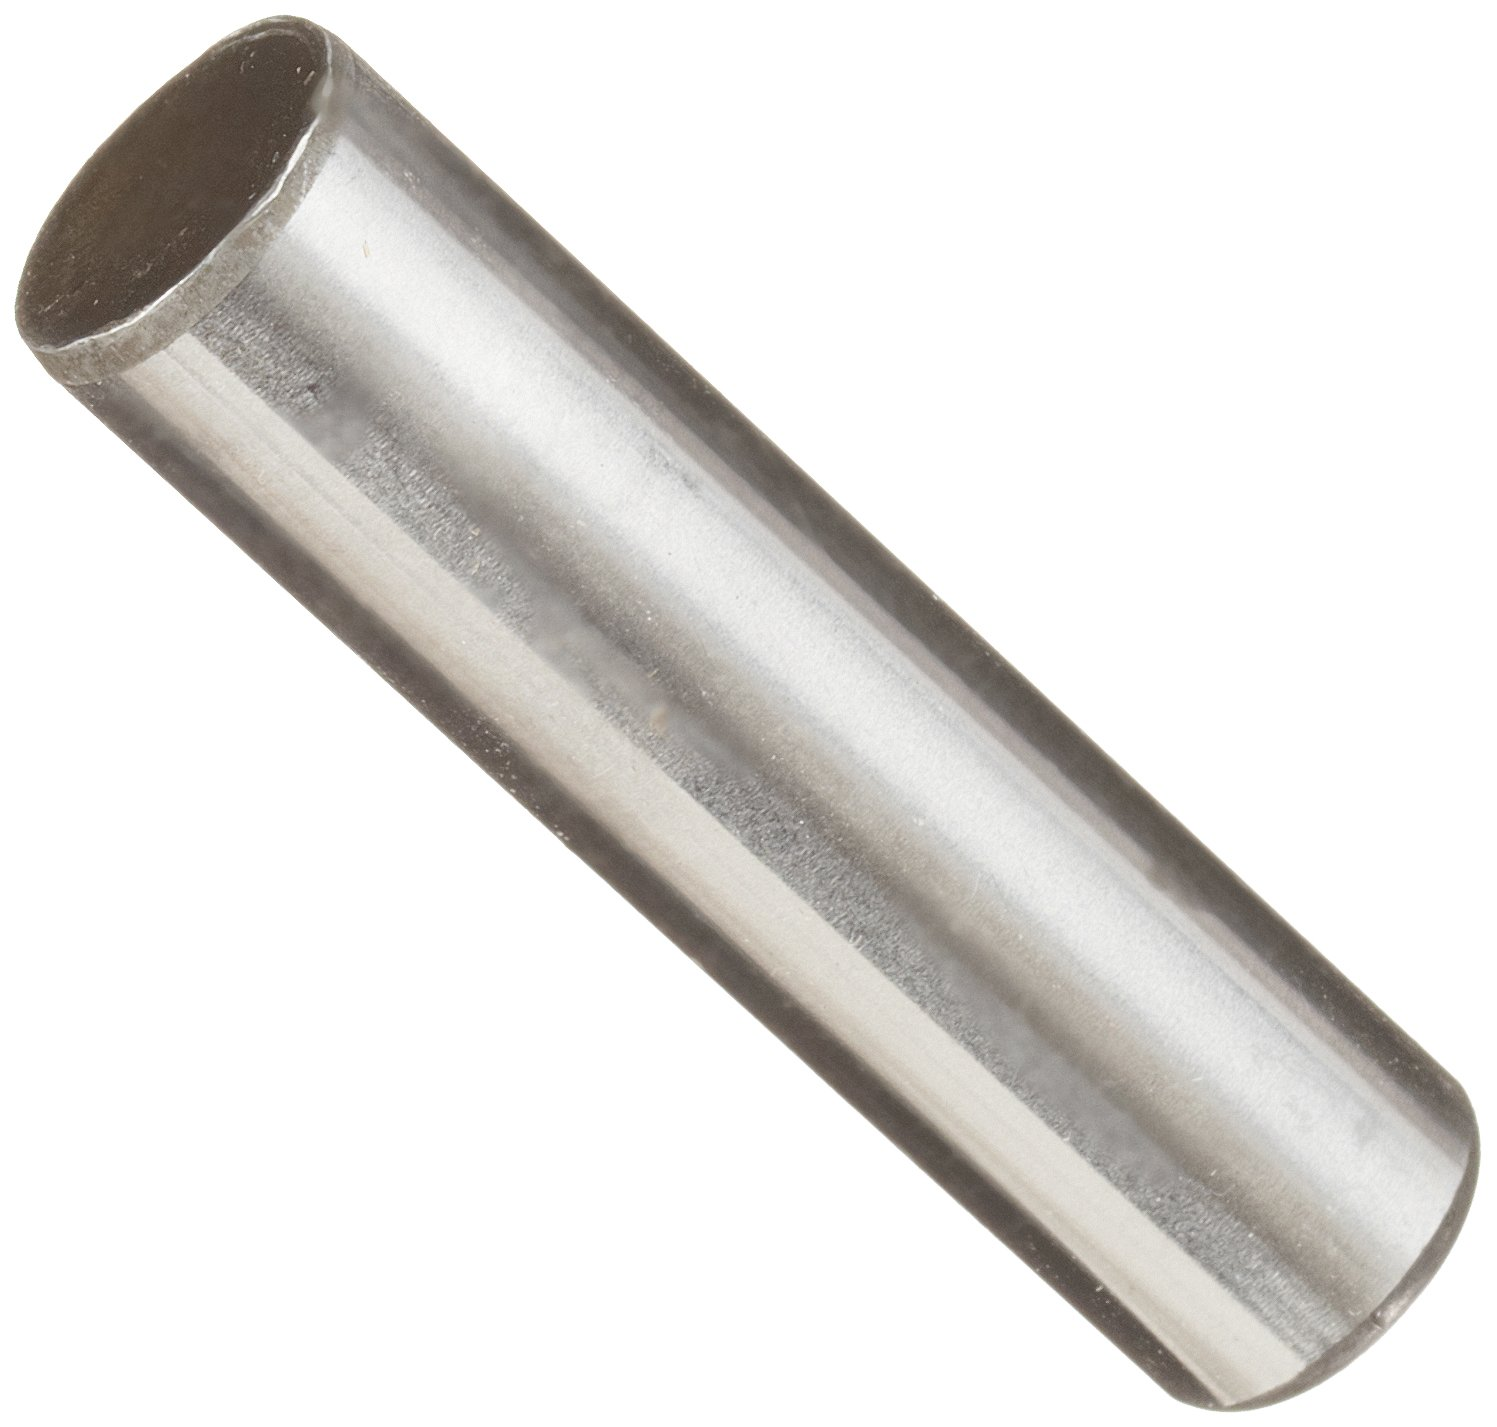 Unbrako 1106609 Alloy Steel Hardened Ground Machine Dowel Pin, Plain Finish, Meets ASME B18.8.2, Standard Tolerance, 1/2'' Nominal Diameter, 2'' Length (Pack of 20)